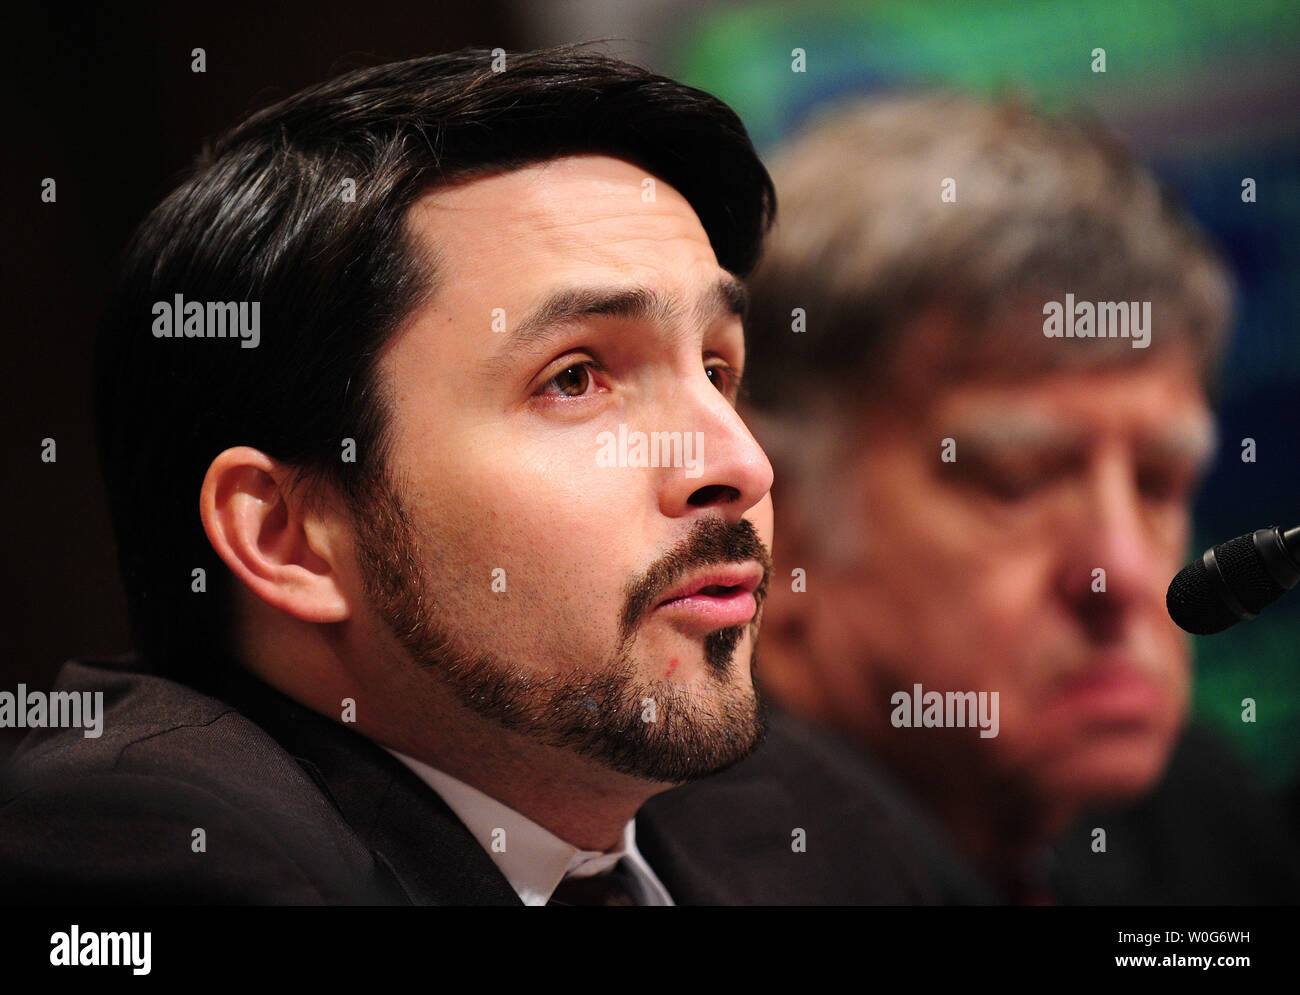 Till von Wachter, associate professor of economics at Columbia University, testifies during a Senate Budget Committee hearing on challenges for the U.S. economic recovery, in Washington on February 3, 2011. UPI/Kevin Dietsch - Stock Image